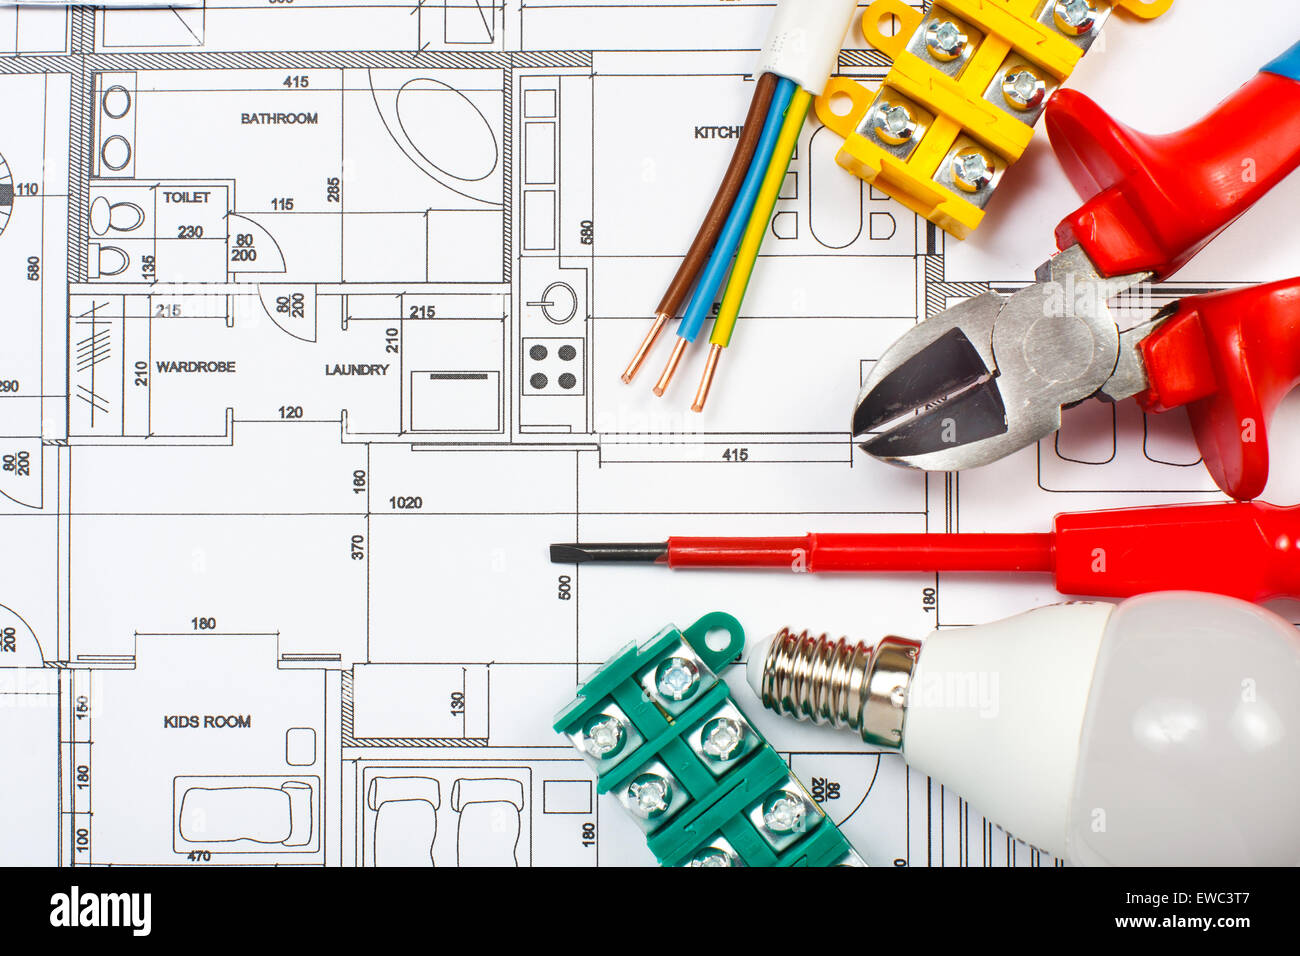 Electrical equipment and tools on house plans - Stock Image